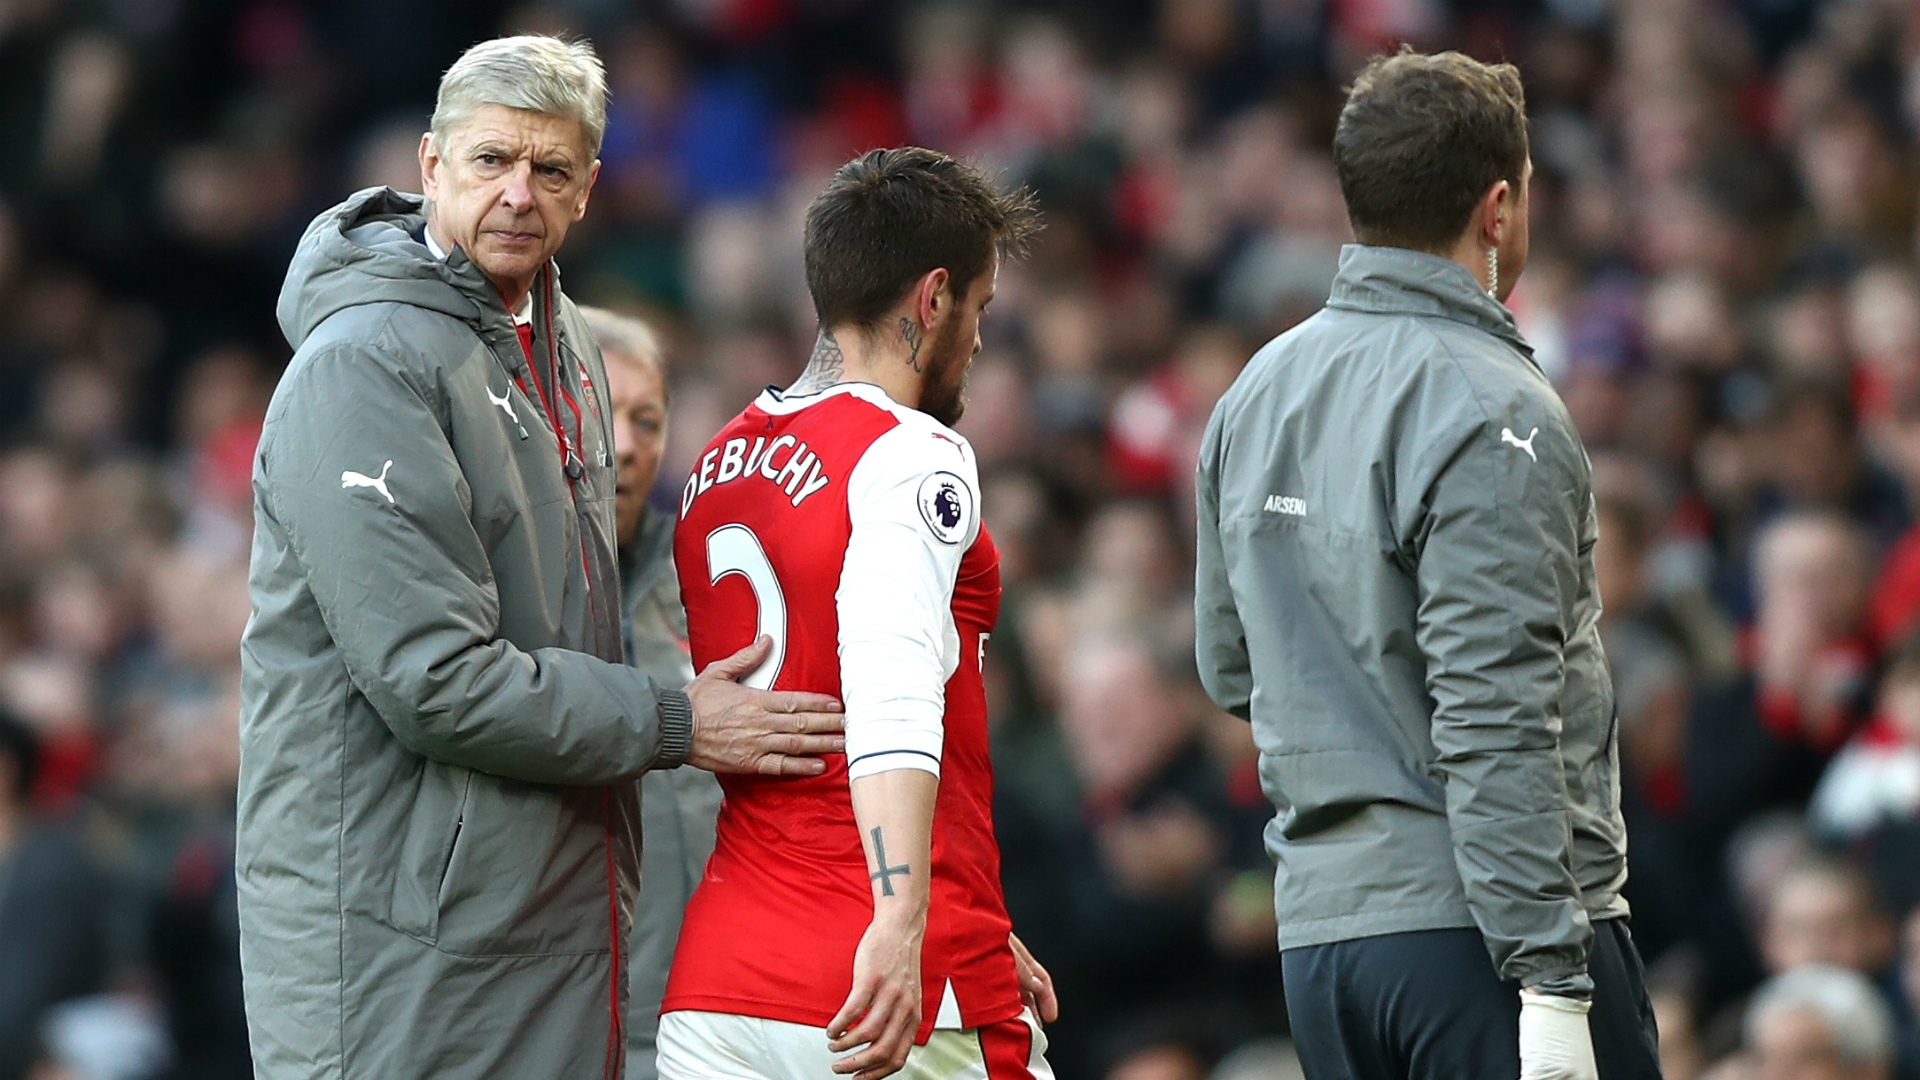 Arsenal's November run of stuttering draws ends with stuttering win over Bournemouth